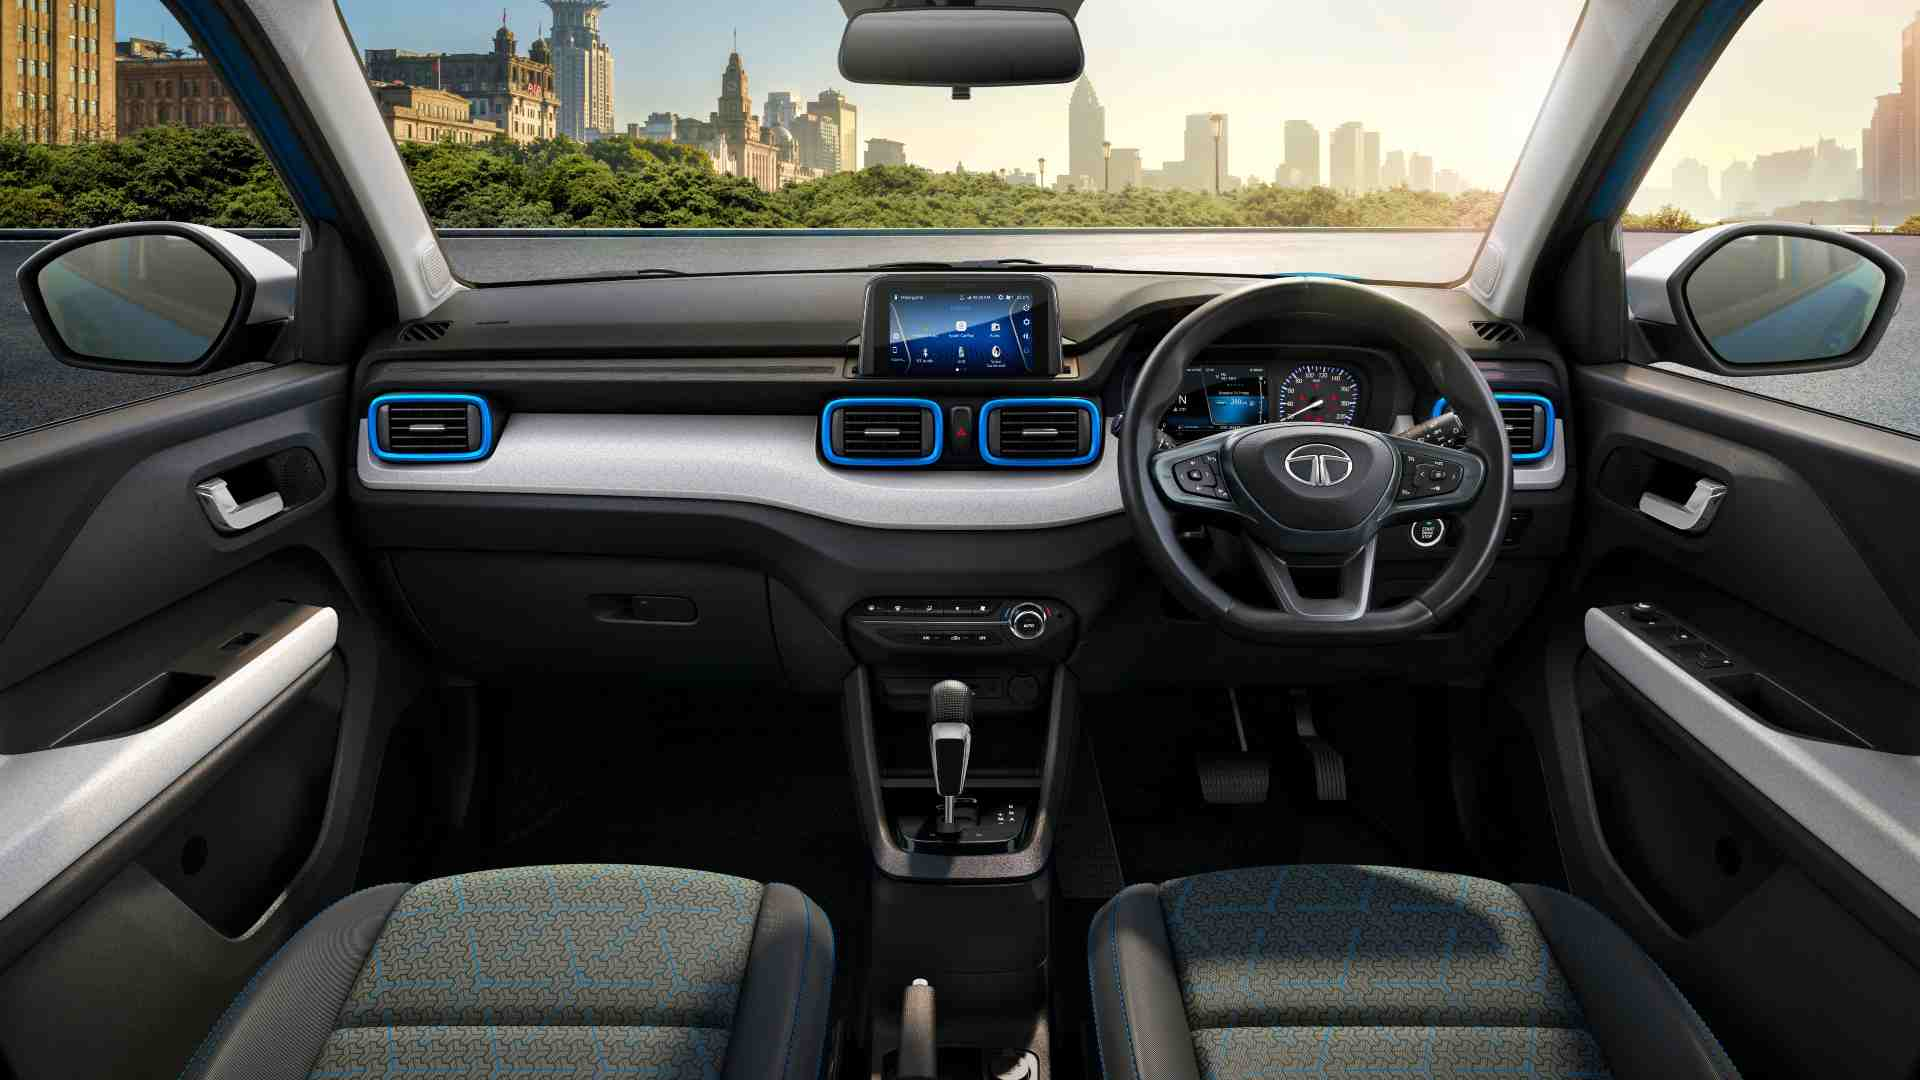 A 7.0-inch touchscreen infotainment system will be offered with the Punch from the Accomplished trim onwards. Image: Tata Motors